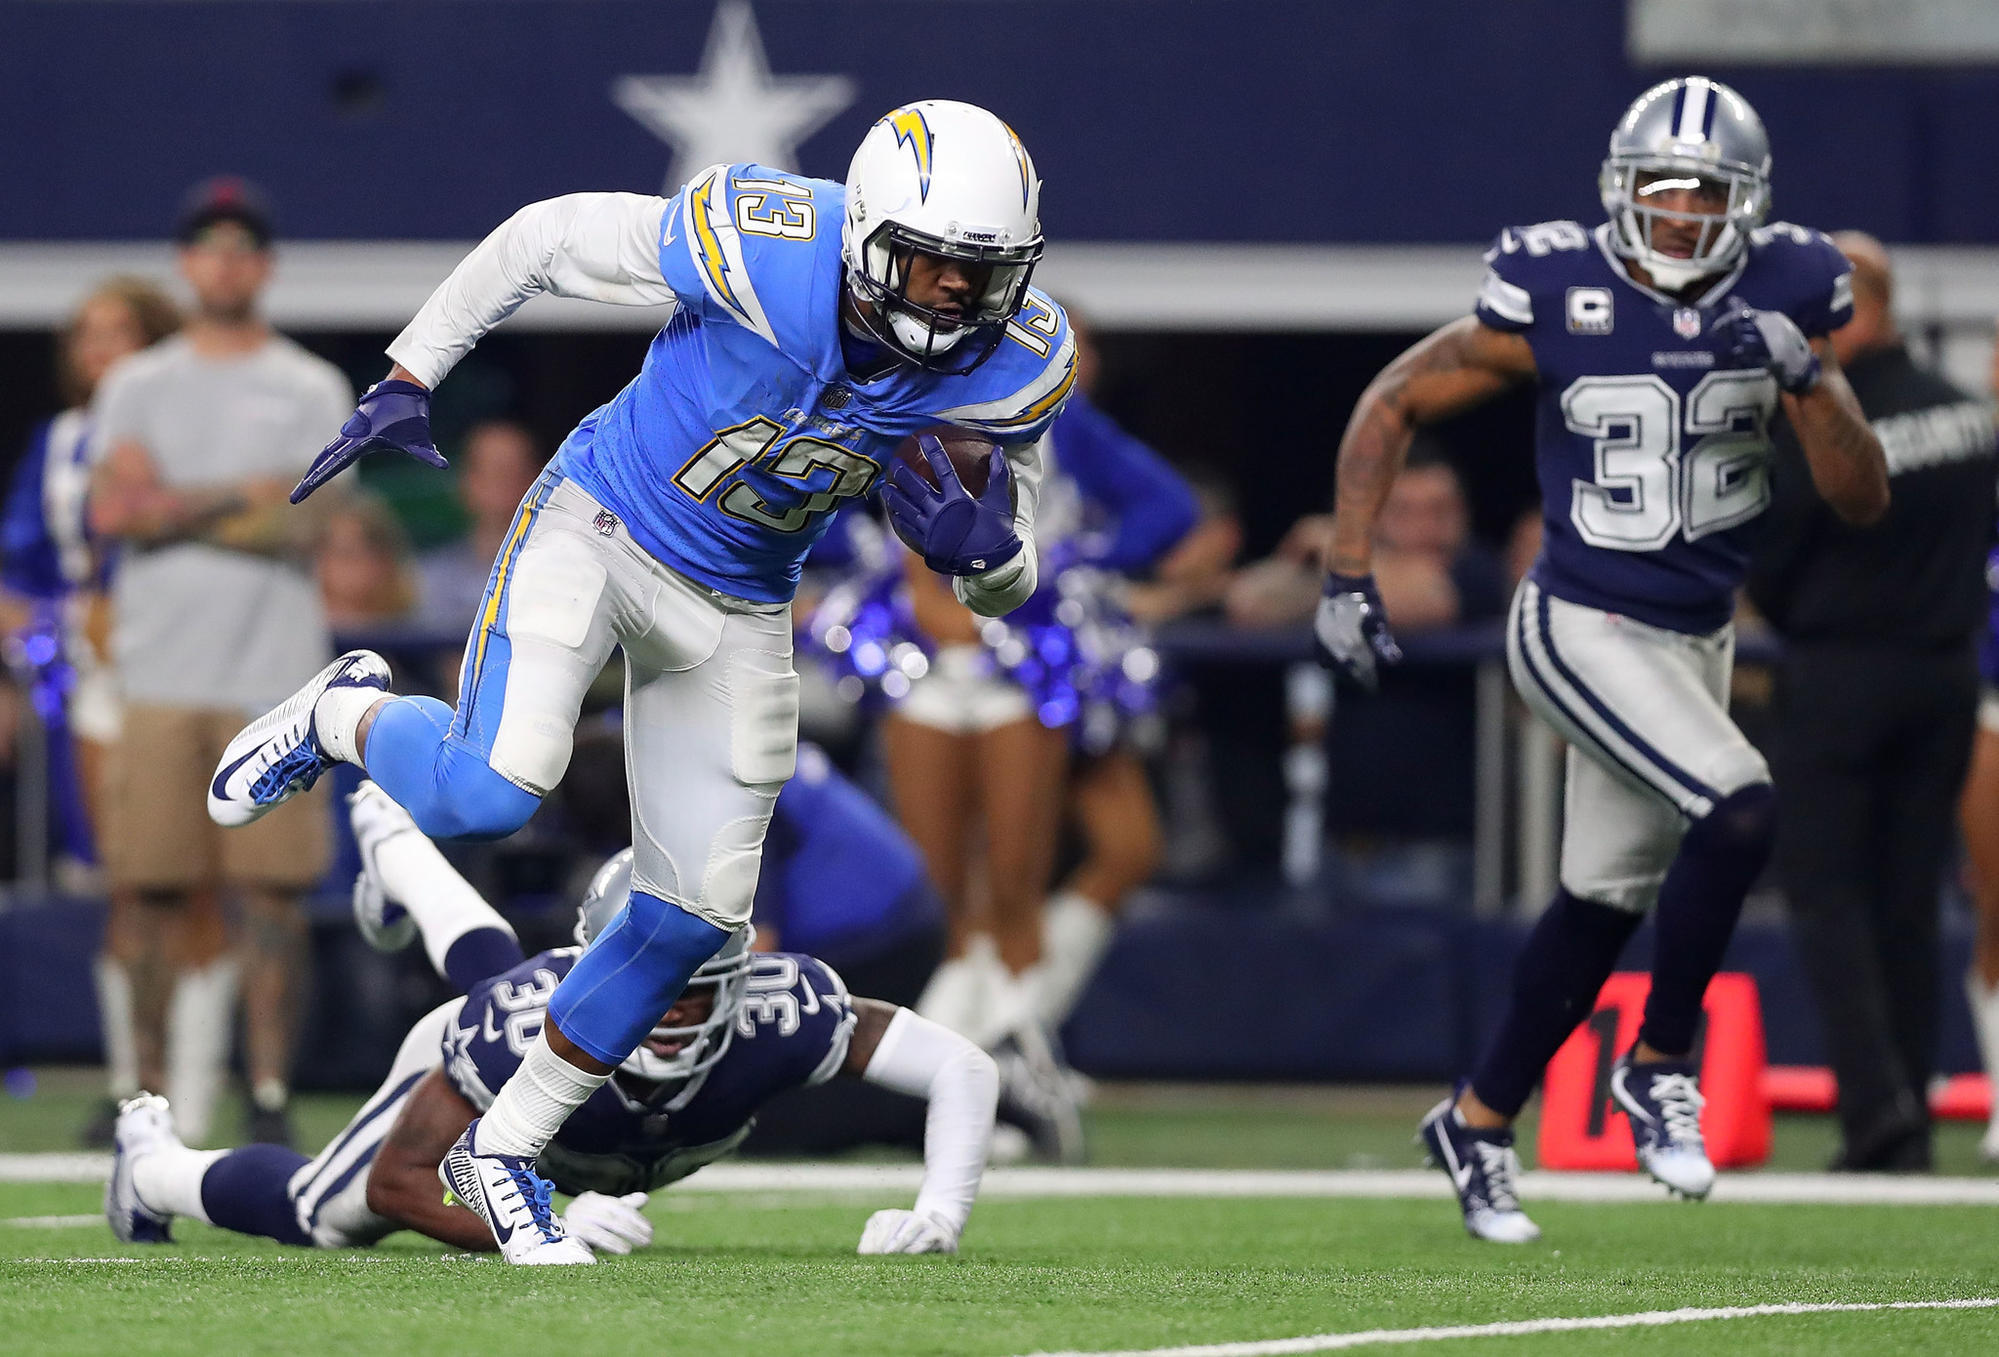 Chargers Keenan Allen Scores Some Points With His Career